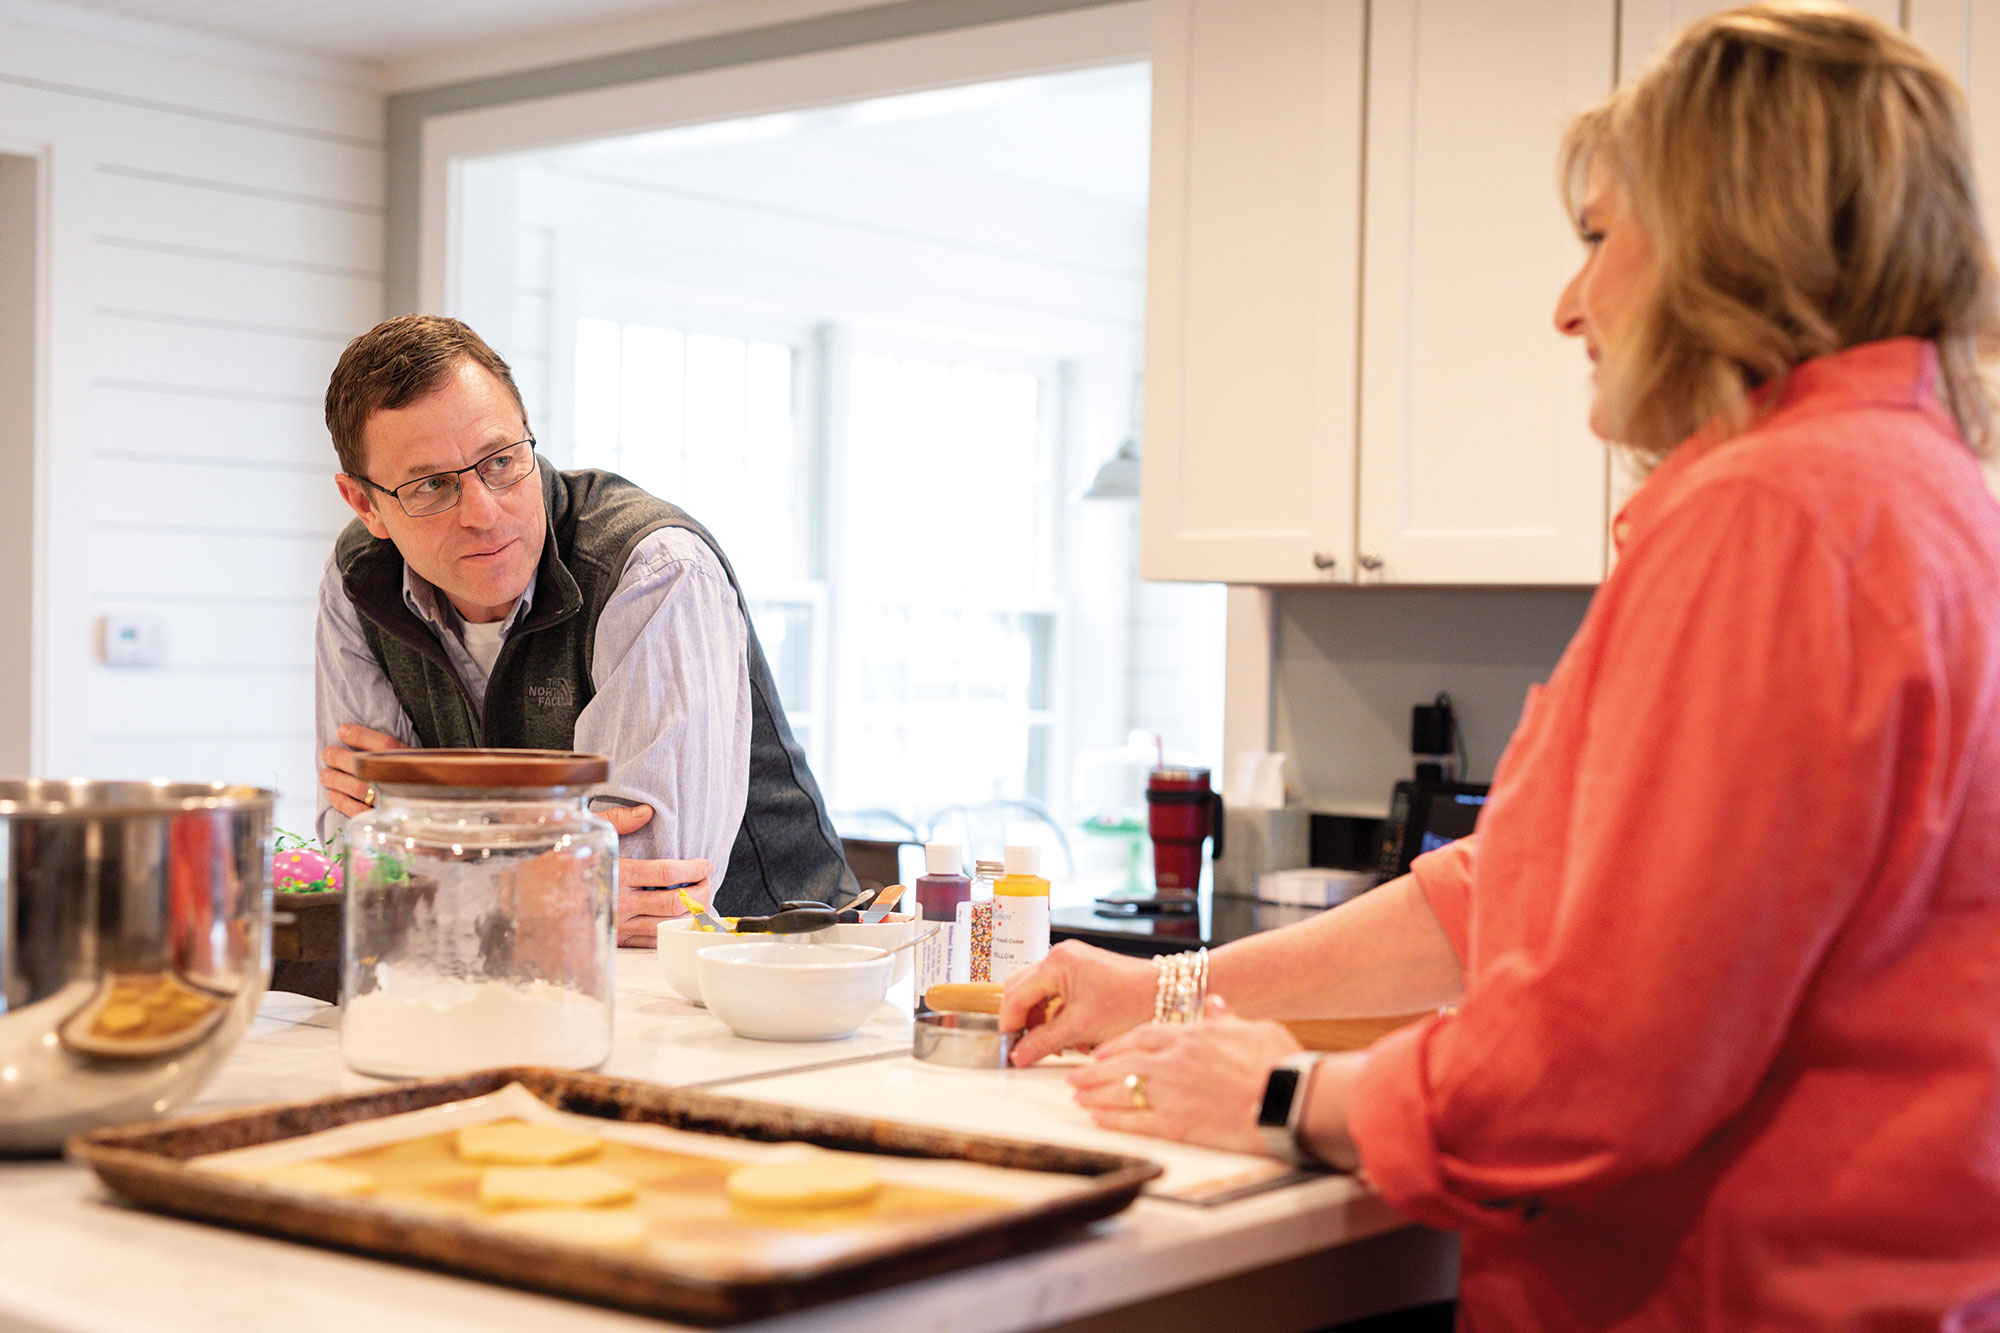 Steve and Debbie Rhines enjoy time together in their kitchen at home.